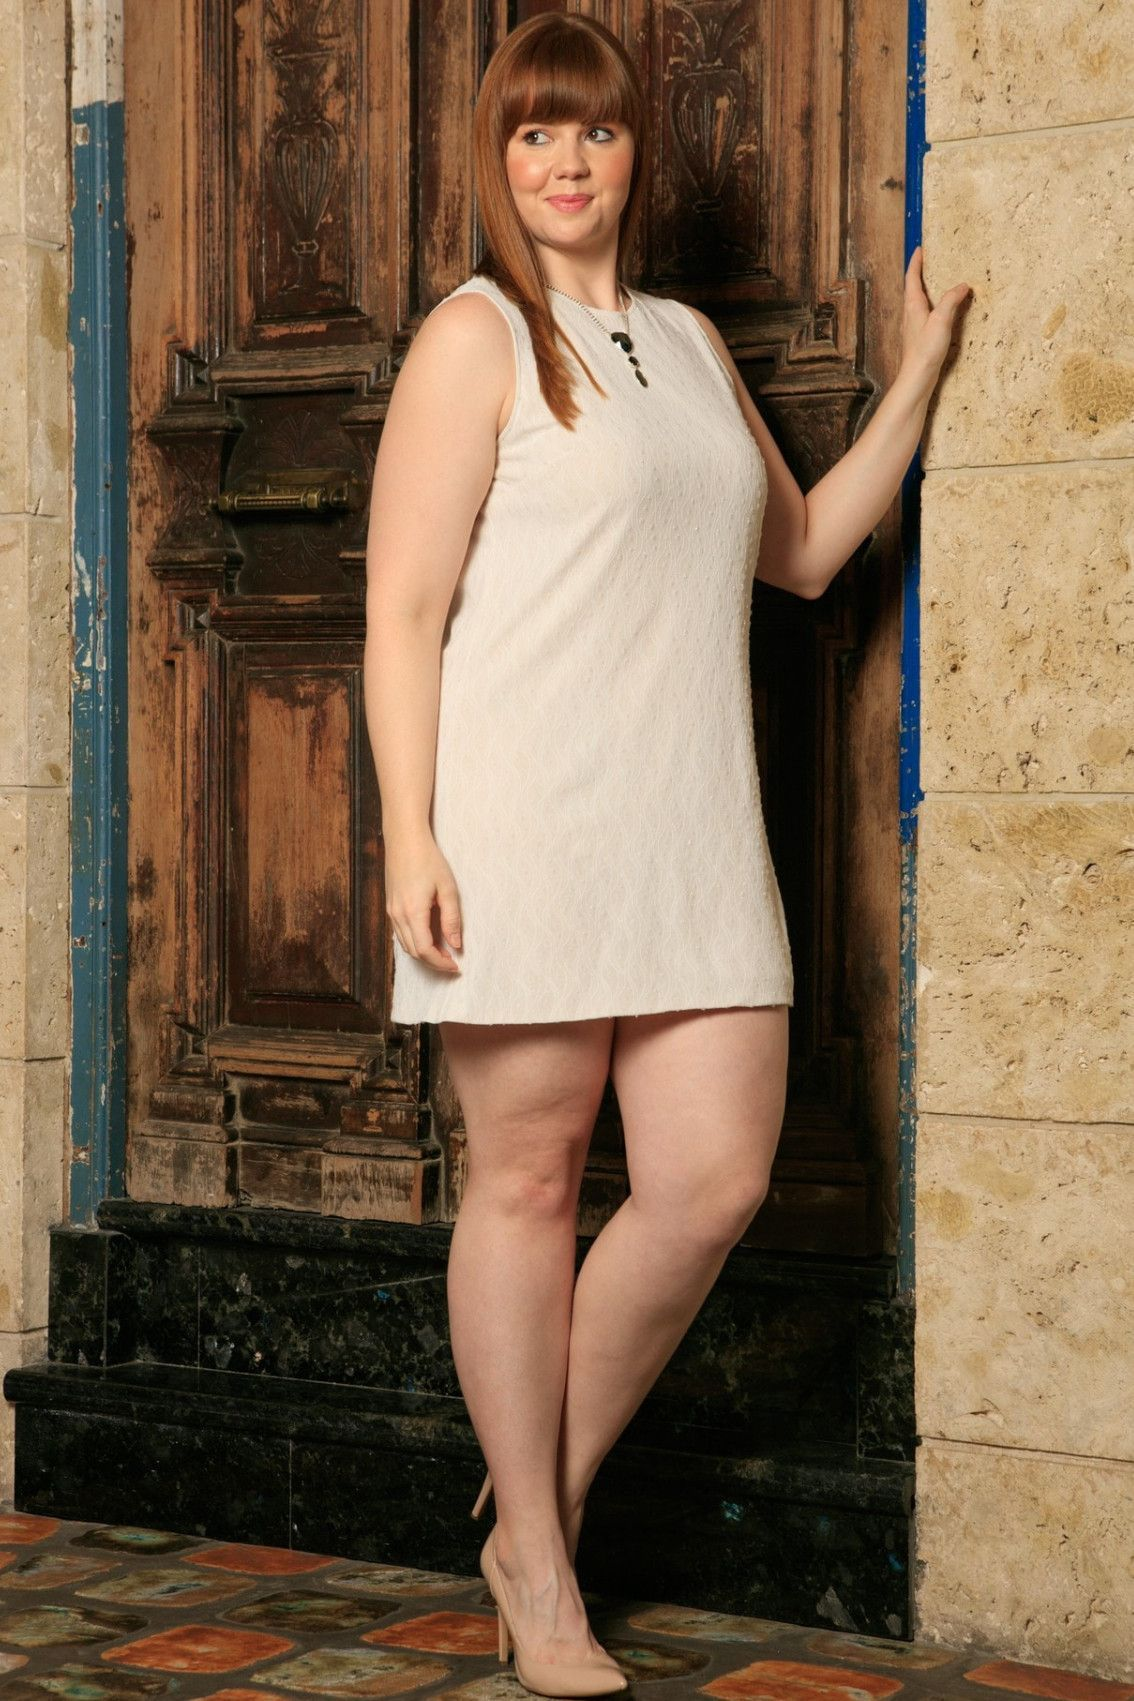 Off-White Stretchy Lace Sleeveless Party Shift Dress - Women Plus Size